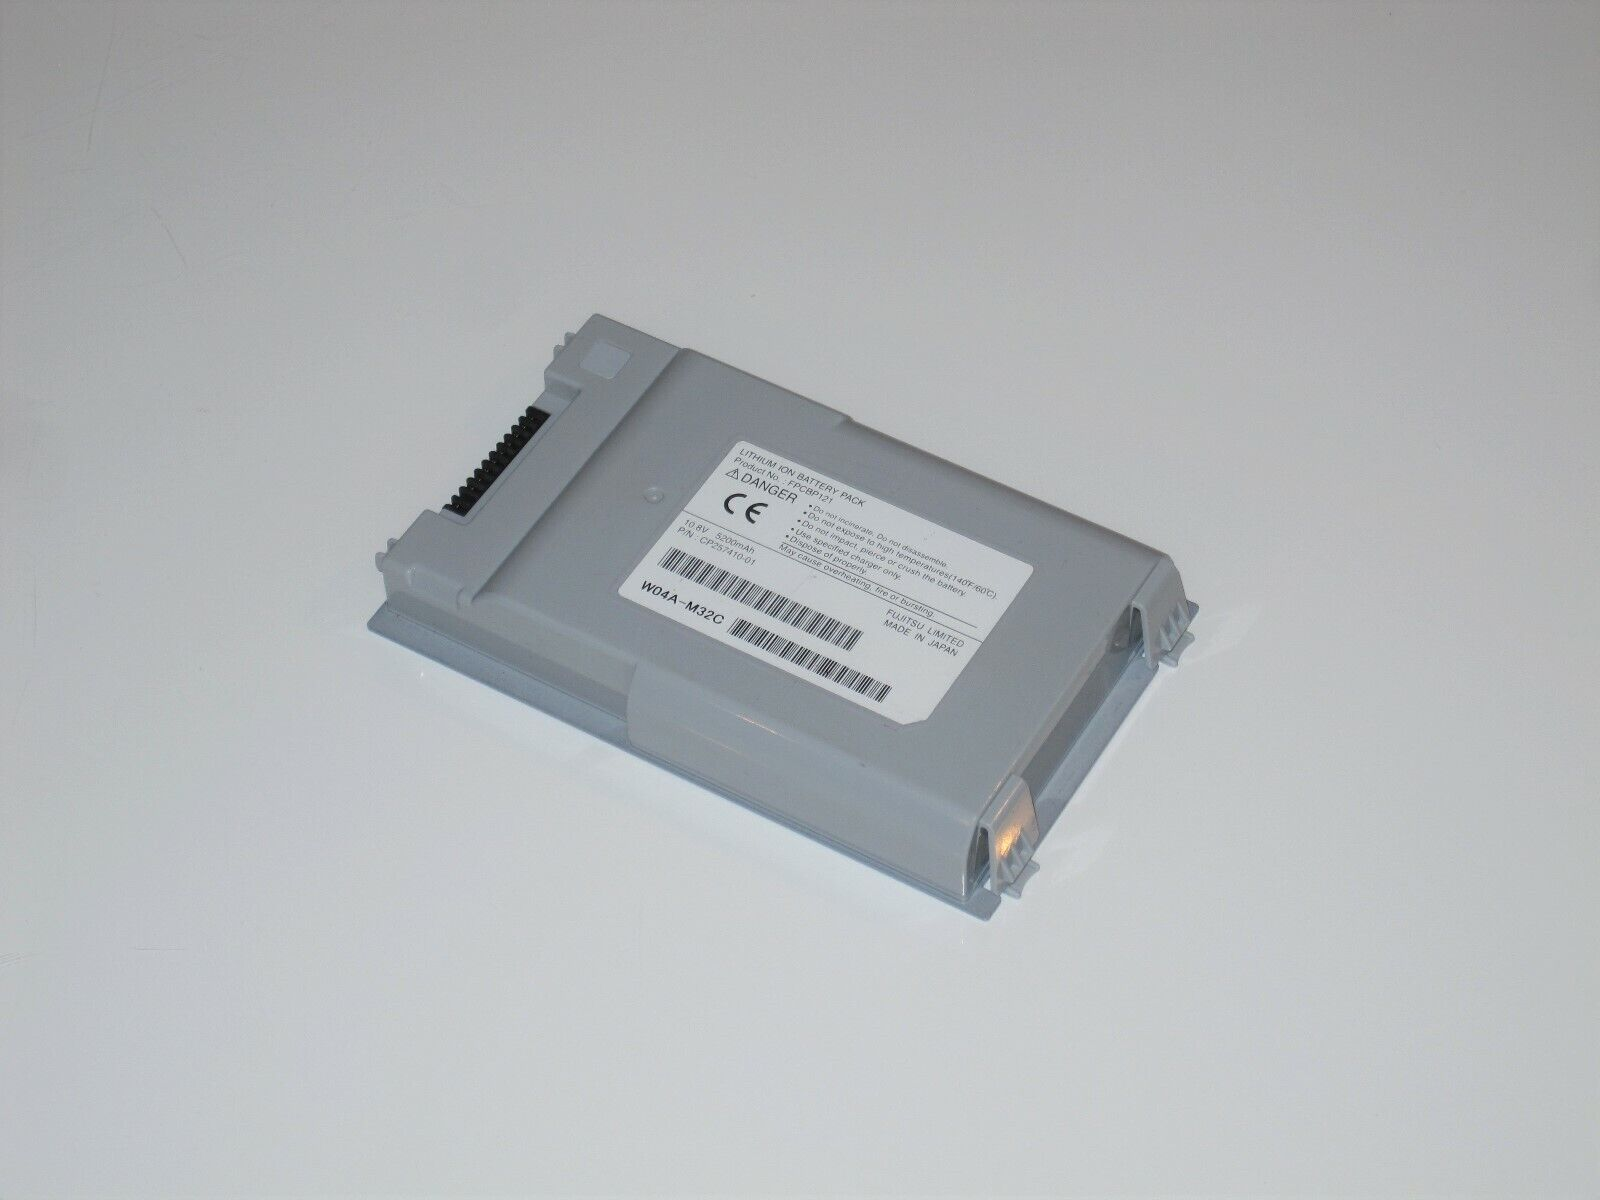 OEM FUJITSU FPCBP121 LITHIUM ION BATTERY PACK CP257410-01 W04A-M32C